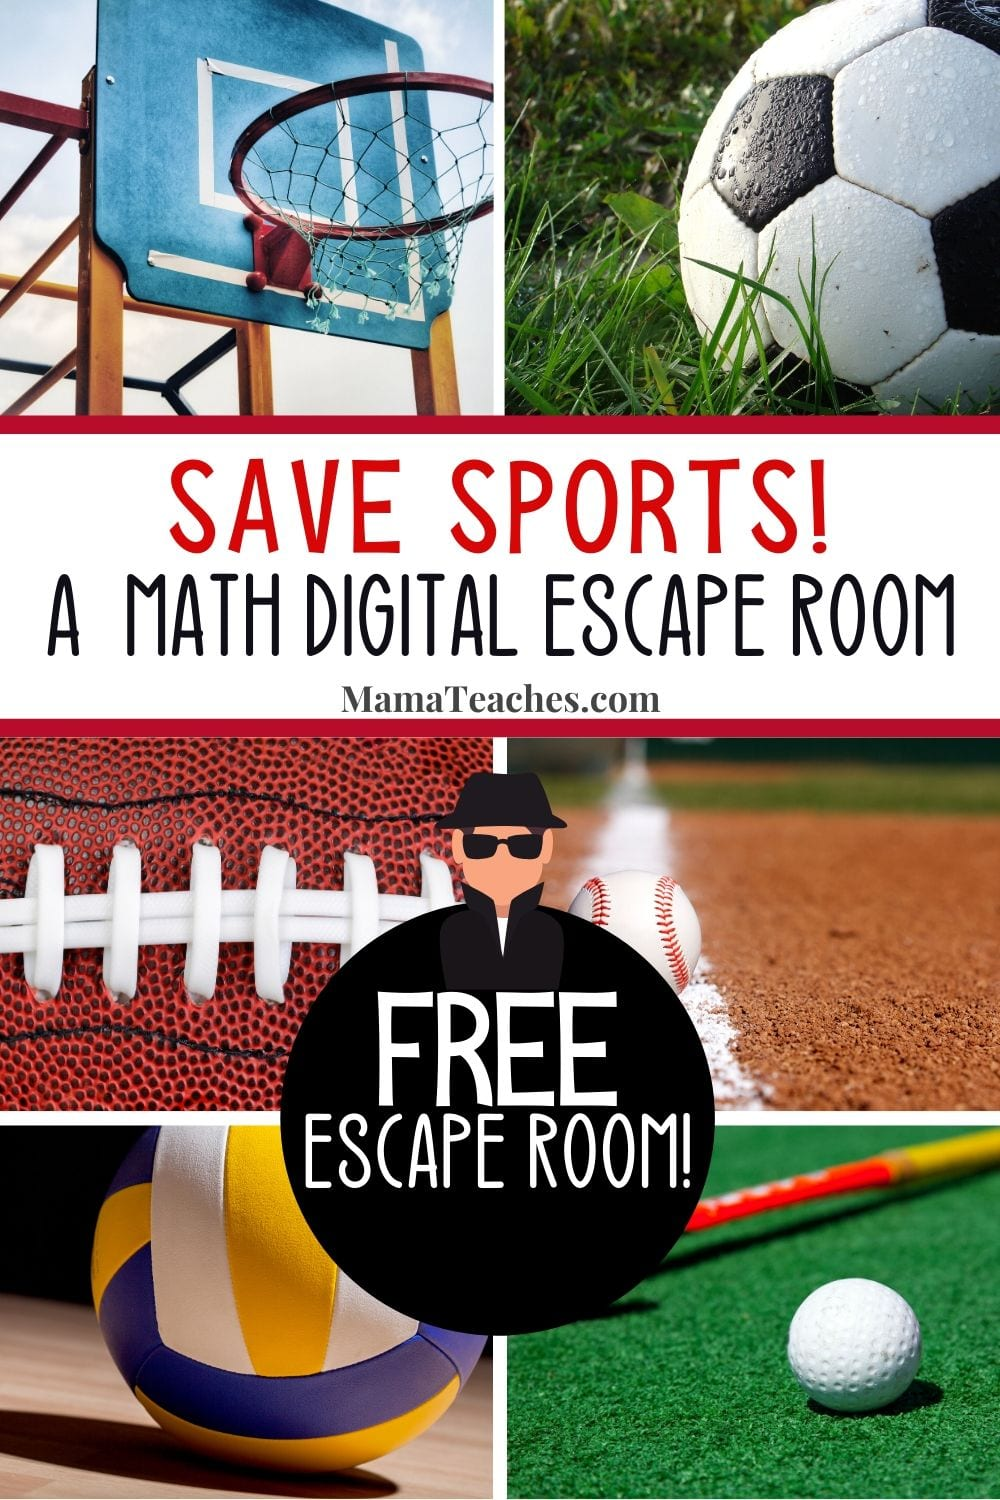 Save Sports! A Math Digital Escape Room for Grades 3-5. Focuses on multiplication, addition, and subtraction...with a directional question thrown in! Find it for free at MamaTeaches.com